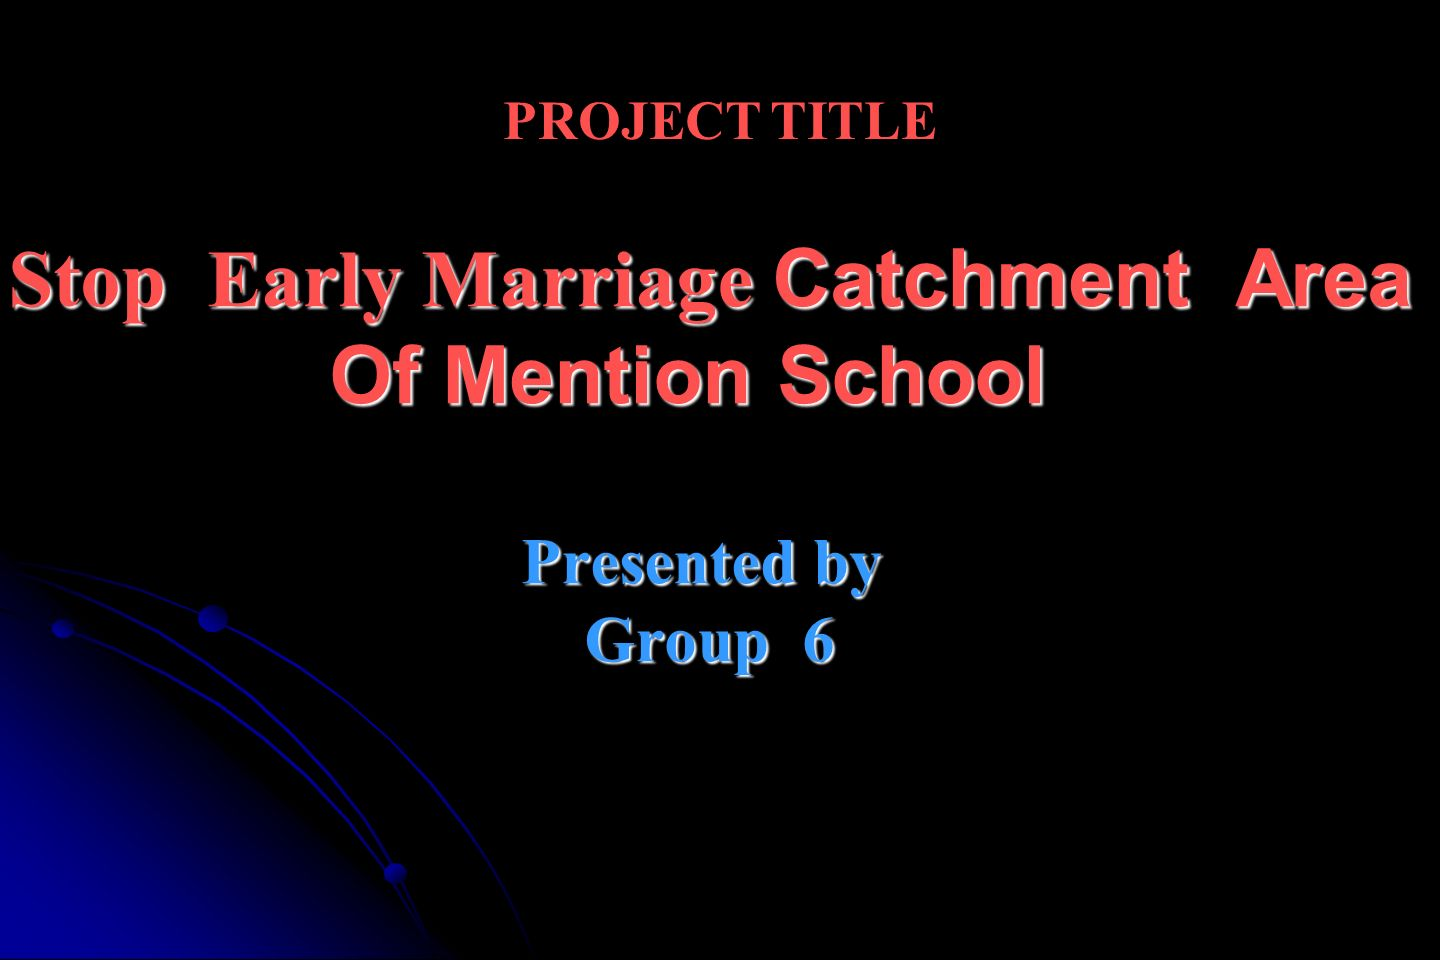 PROJECT TITLE Stop Early Marriage Catchment Area Of Mention School Presented by Group 6